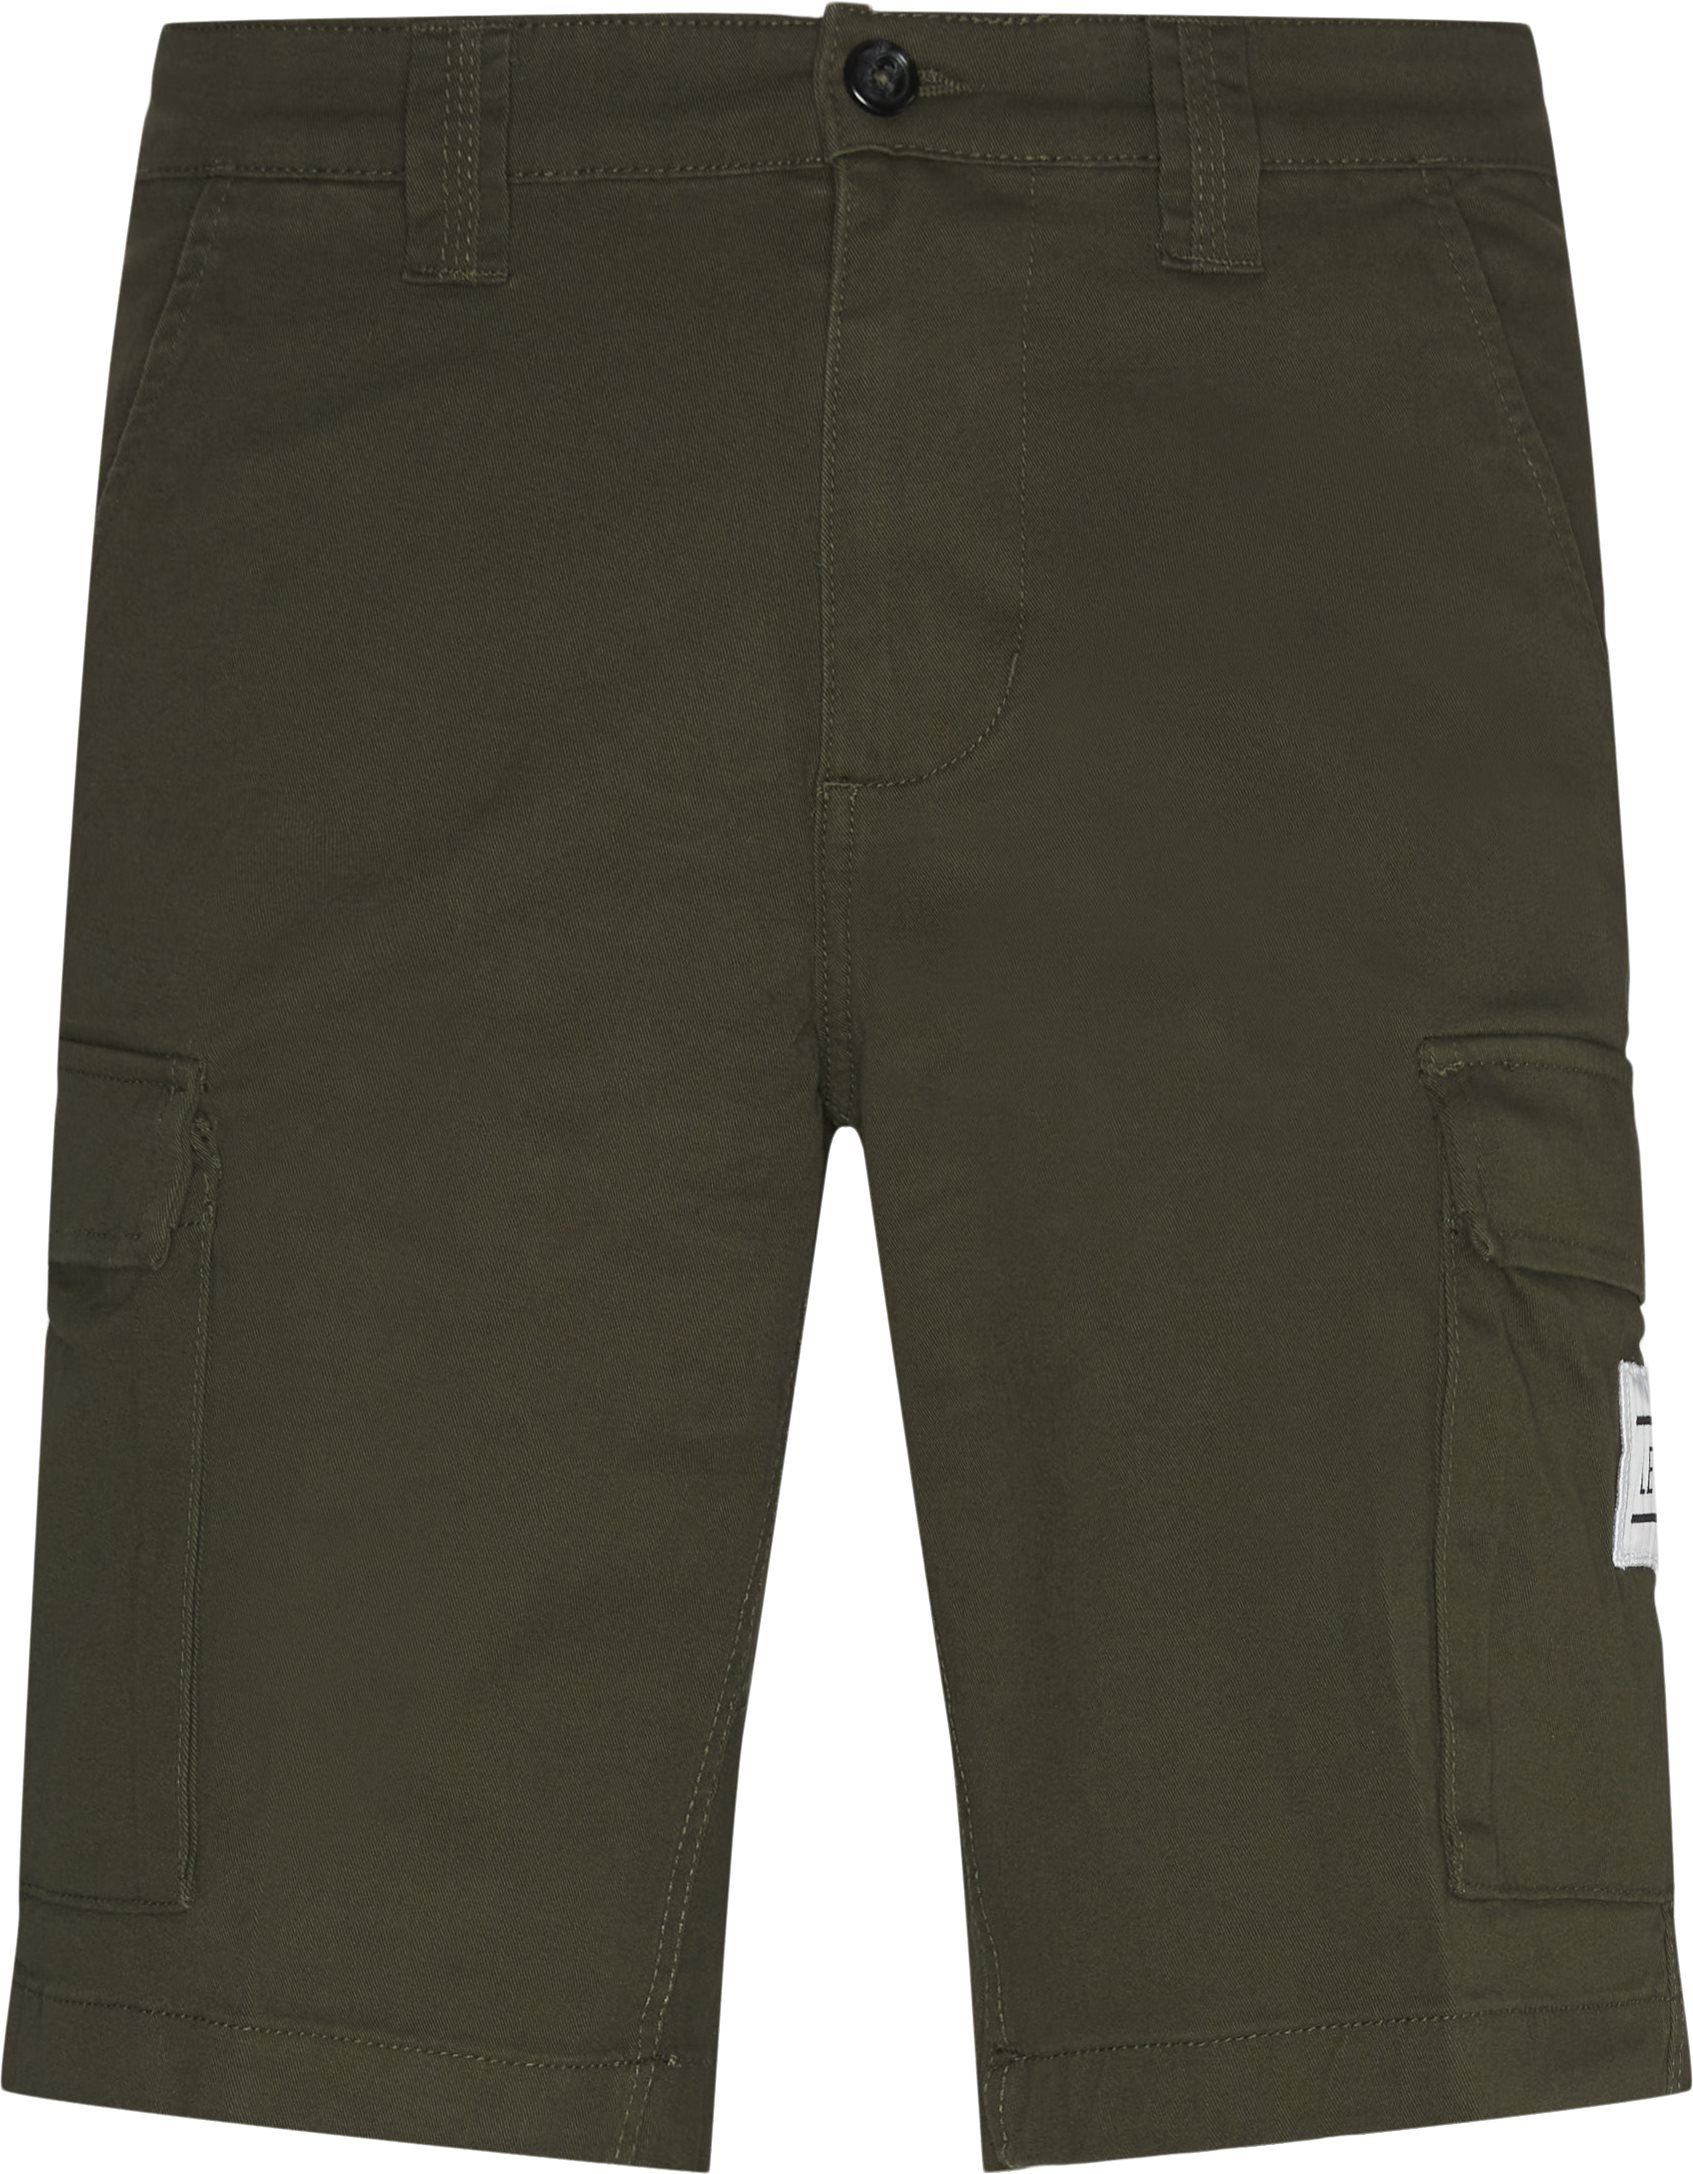 Shorts - Loose fit - Army